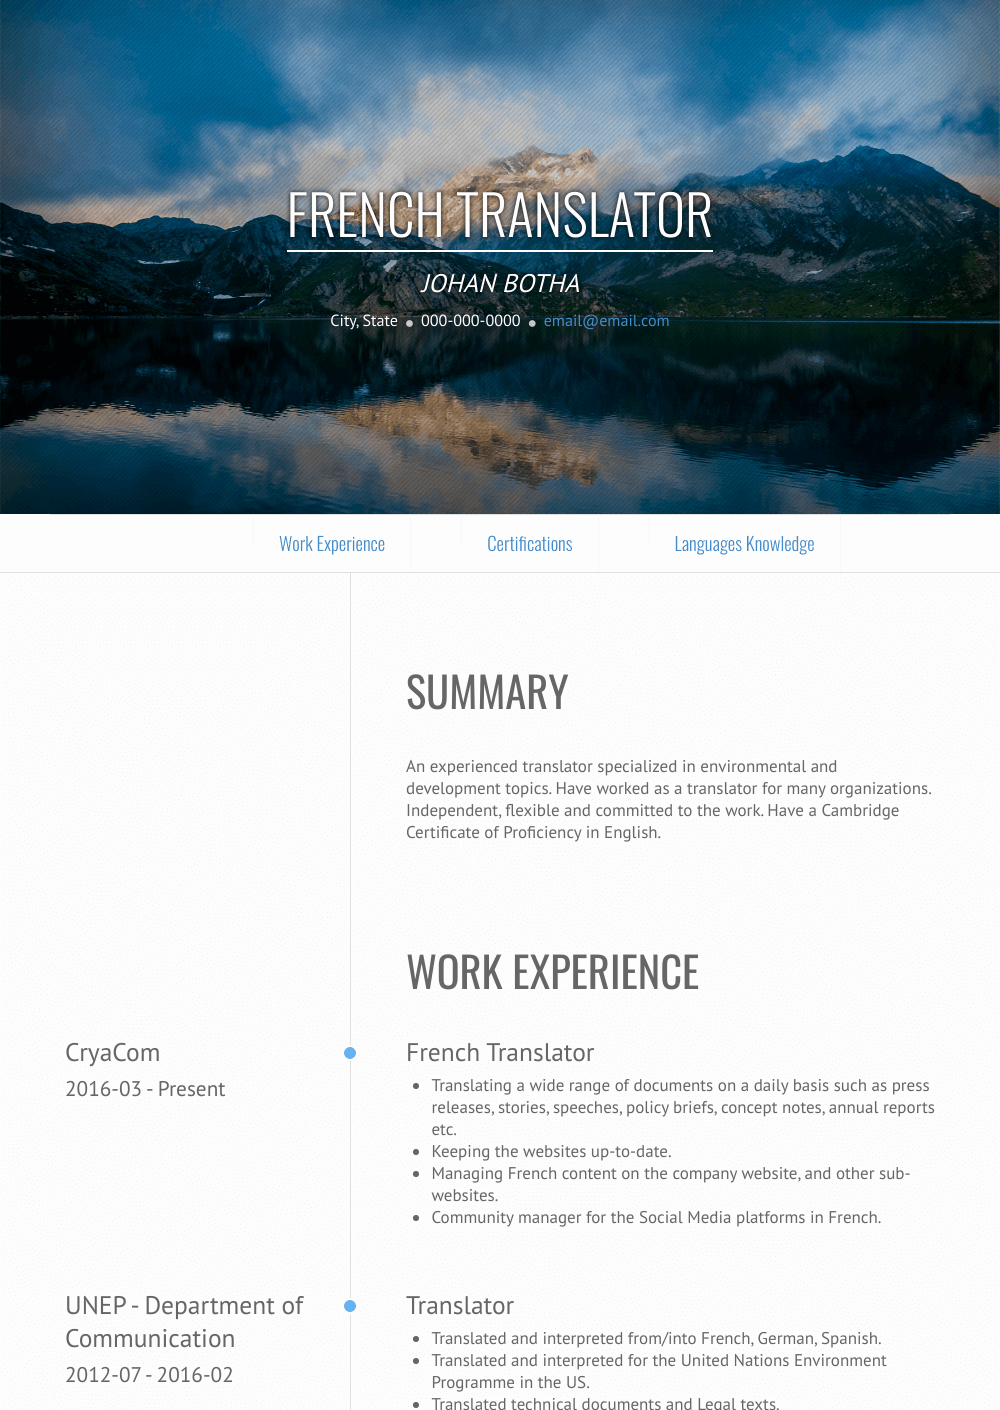 French Translator Resume Sample and Template